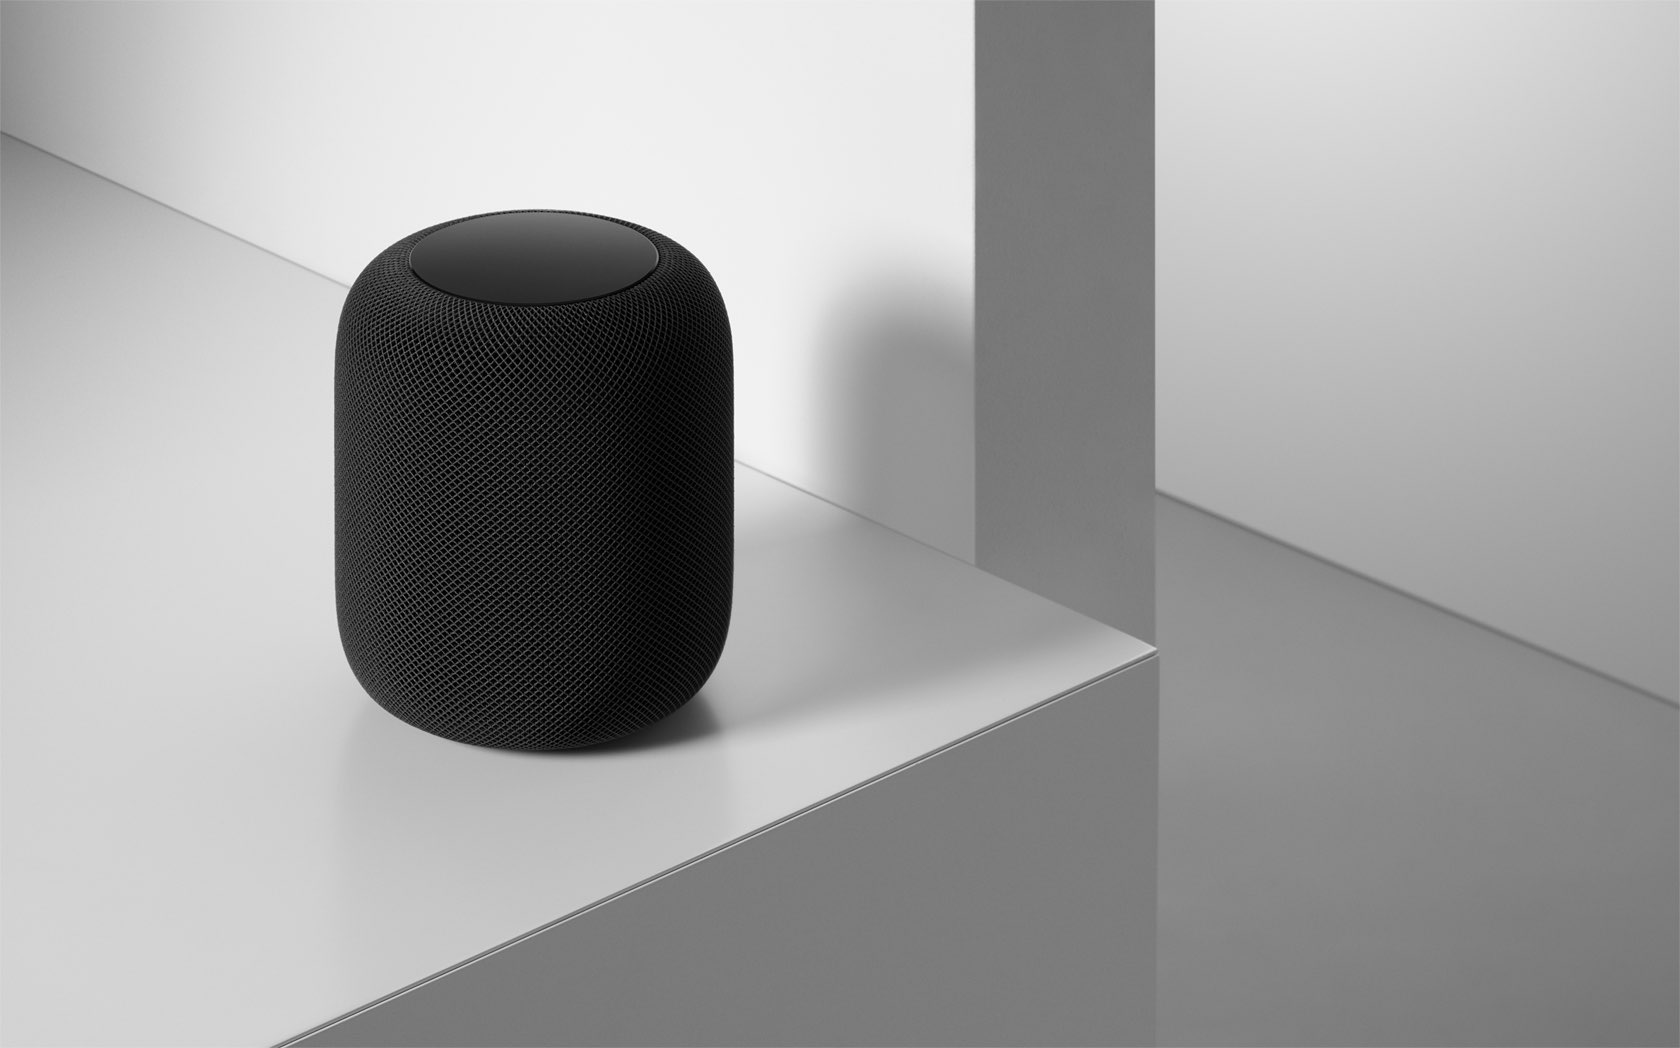 HomePod now does both spatial and lossless audio, HomePod mini limited to spatial audio